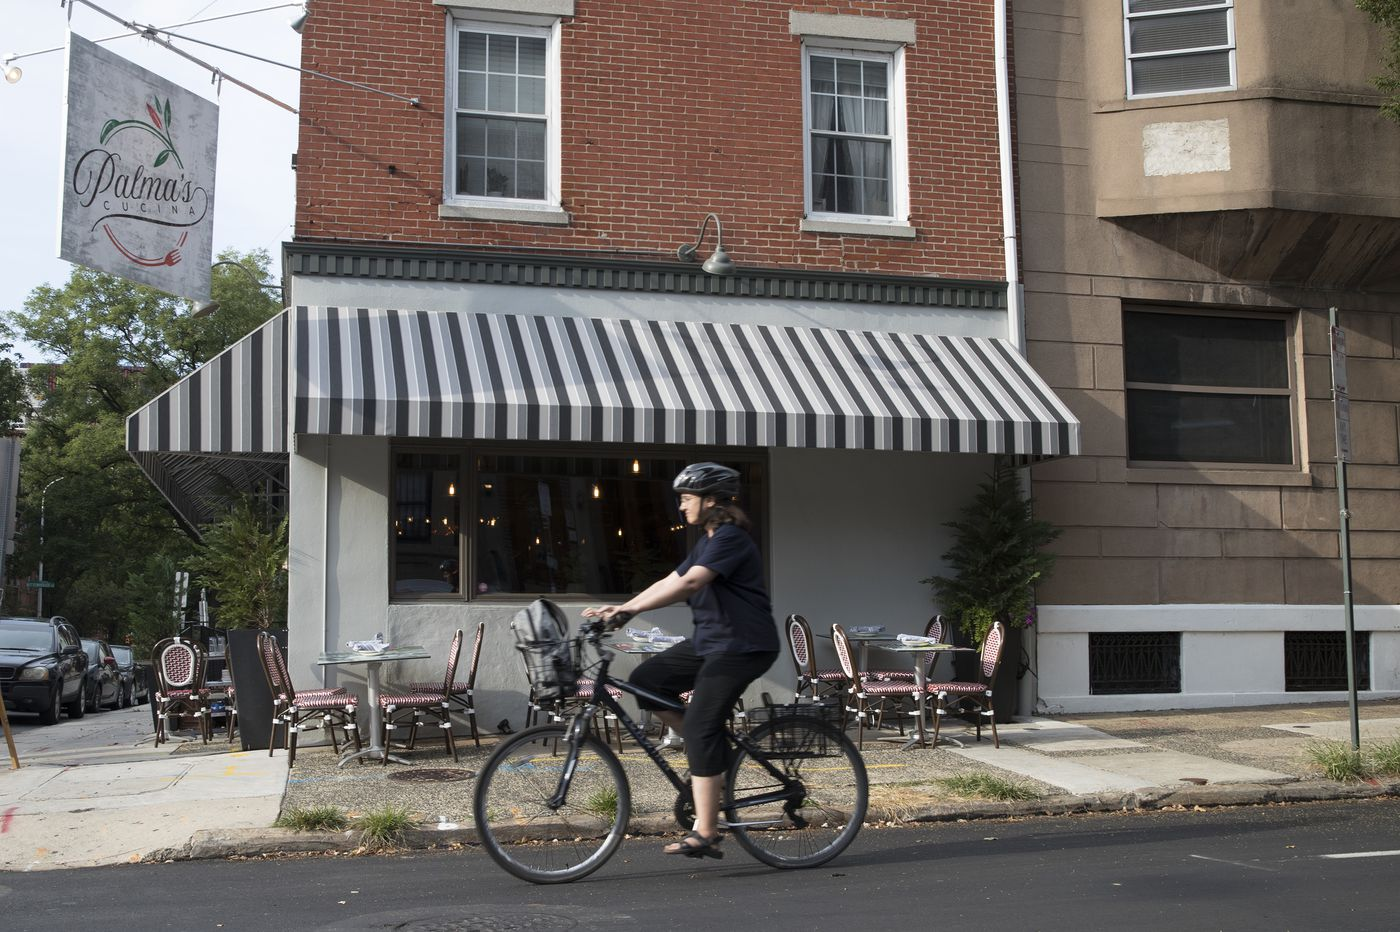 Restaurant deal at former Palma's Cucina is off as Burrata owners pull out